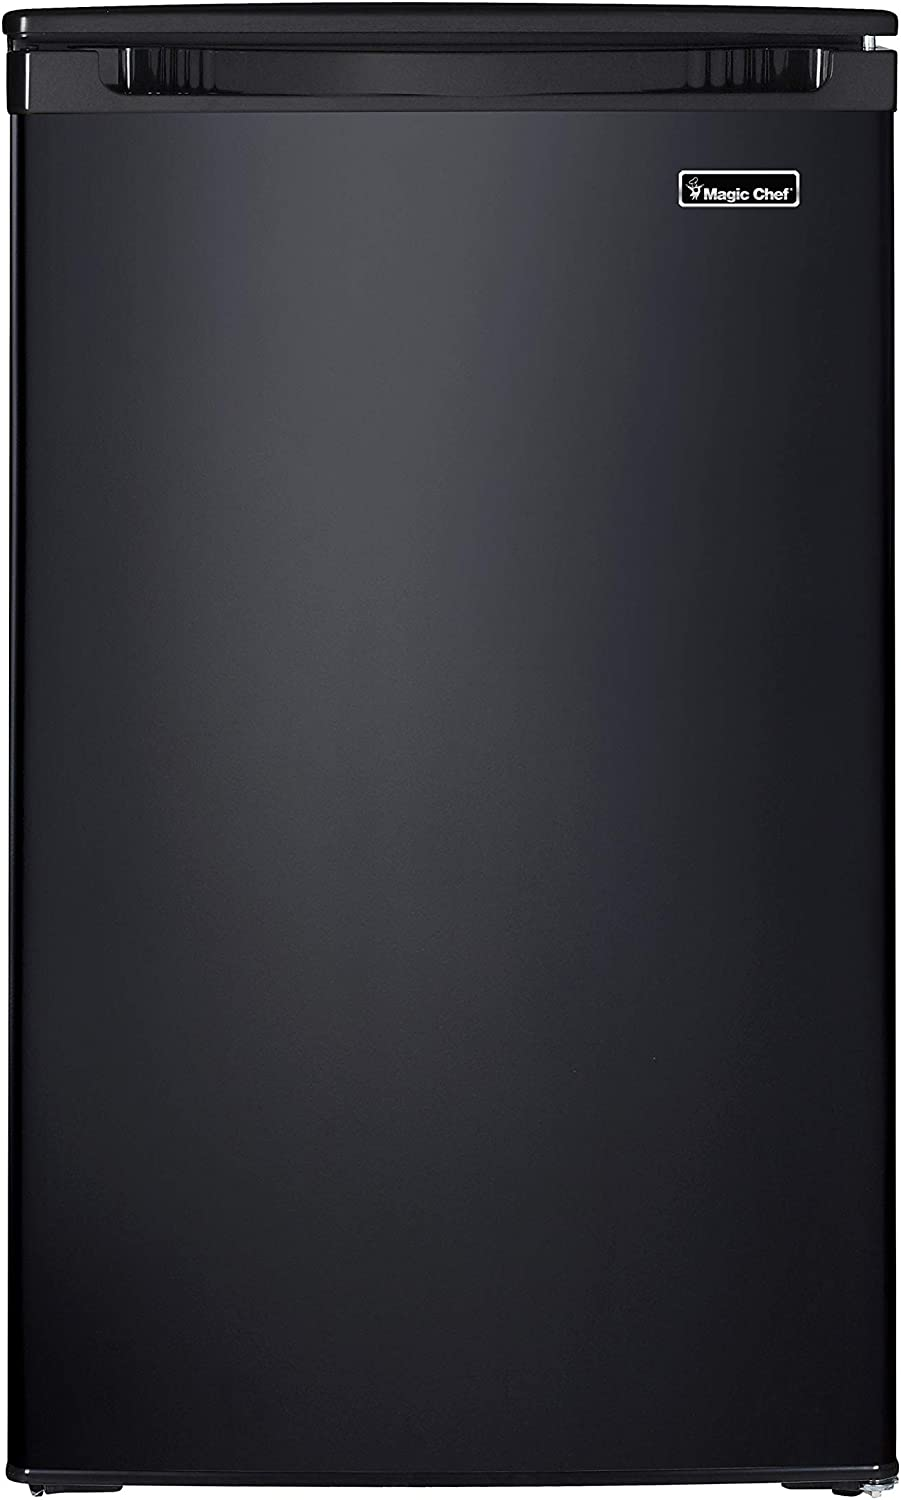 Magic Chef MCAR440BE 4.4 Cu. Ft. All Refrigerator in Black